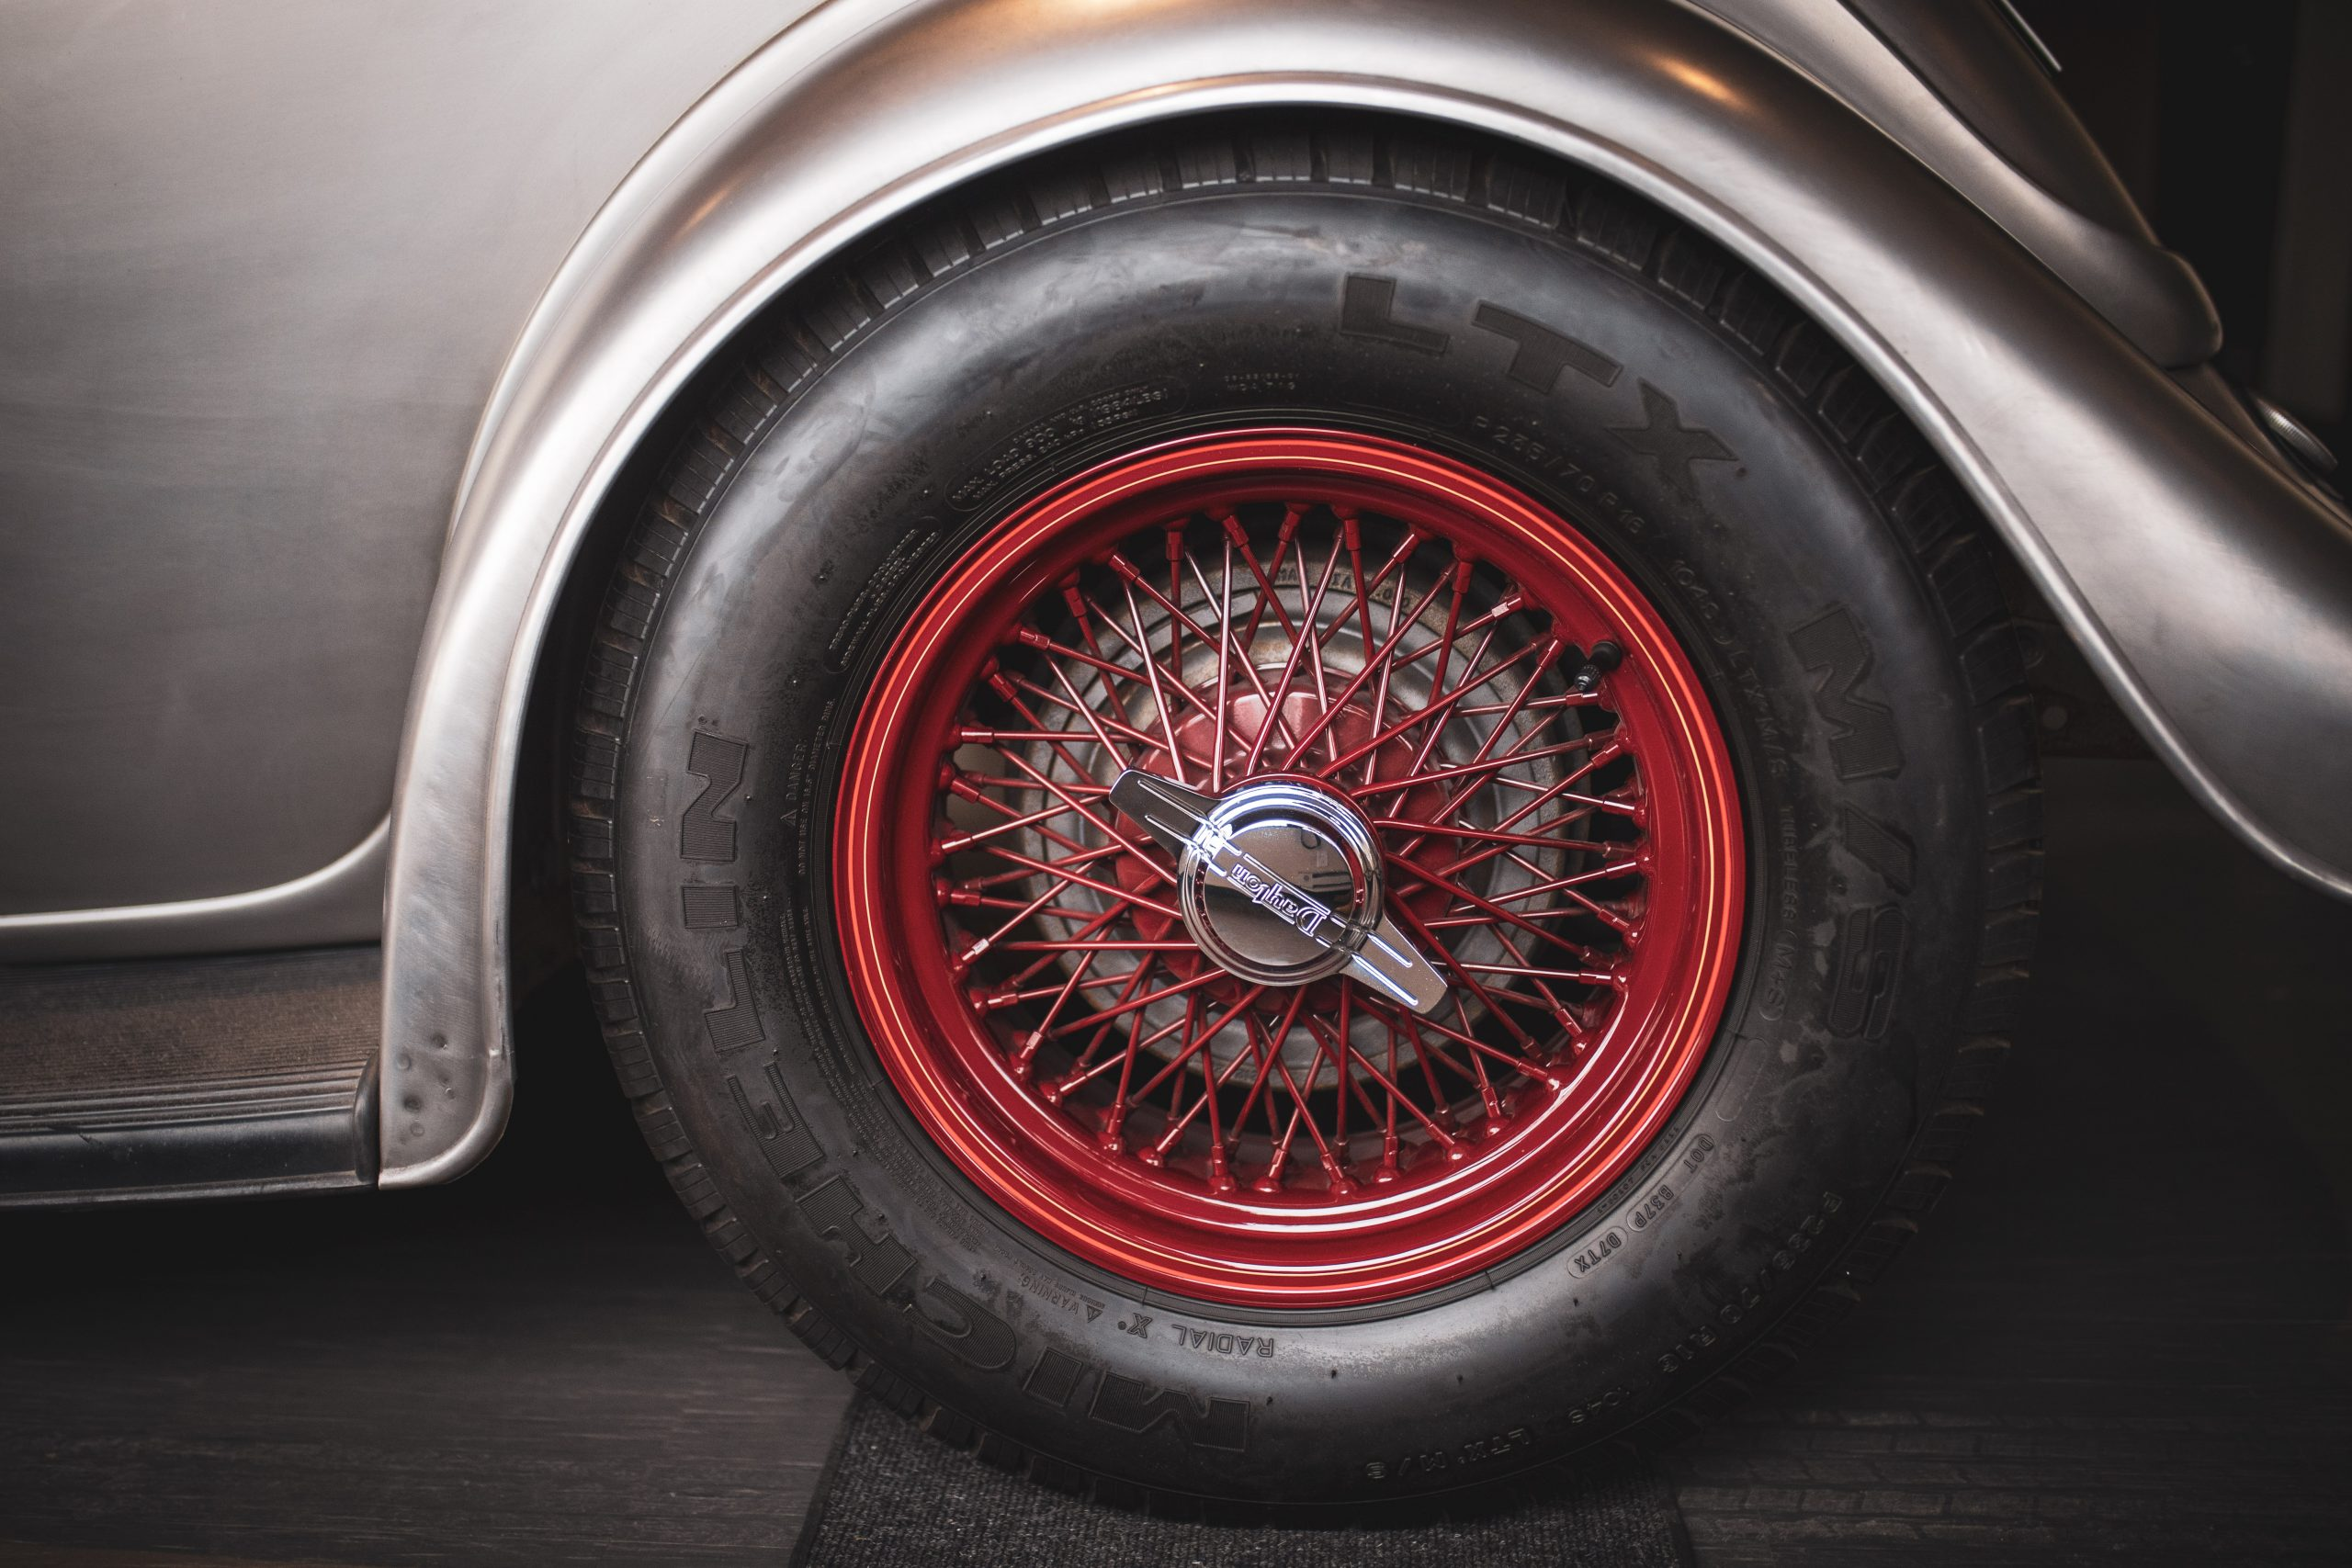 American Speed Company Hot Rod wheel